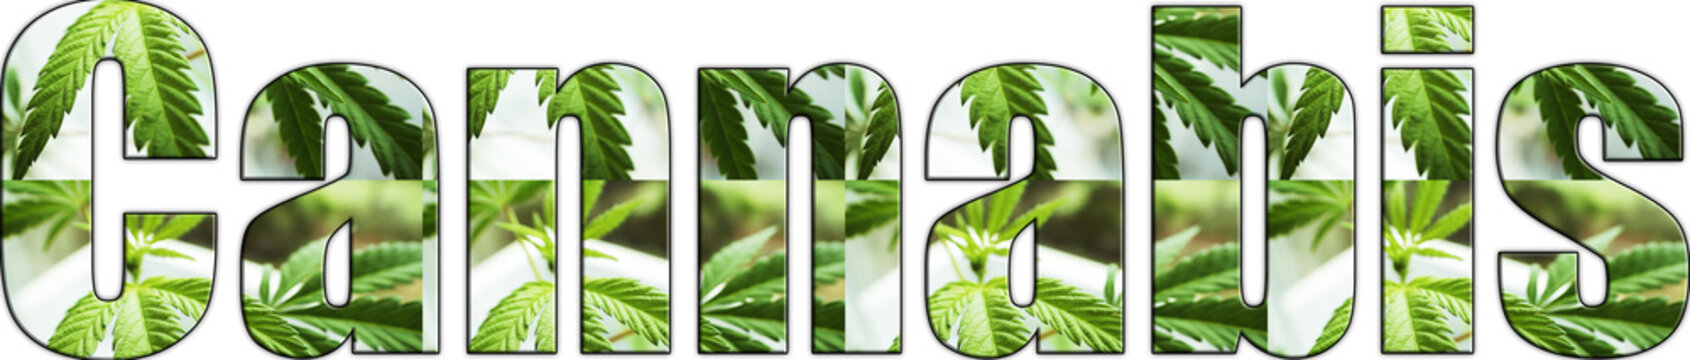 Cannabis Logo With Marijuana Leaves Inside Lettering With White Background